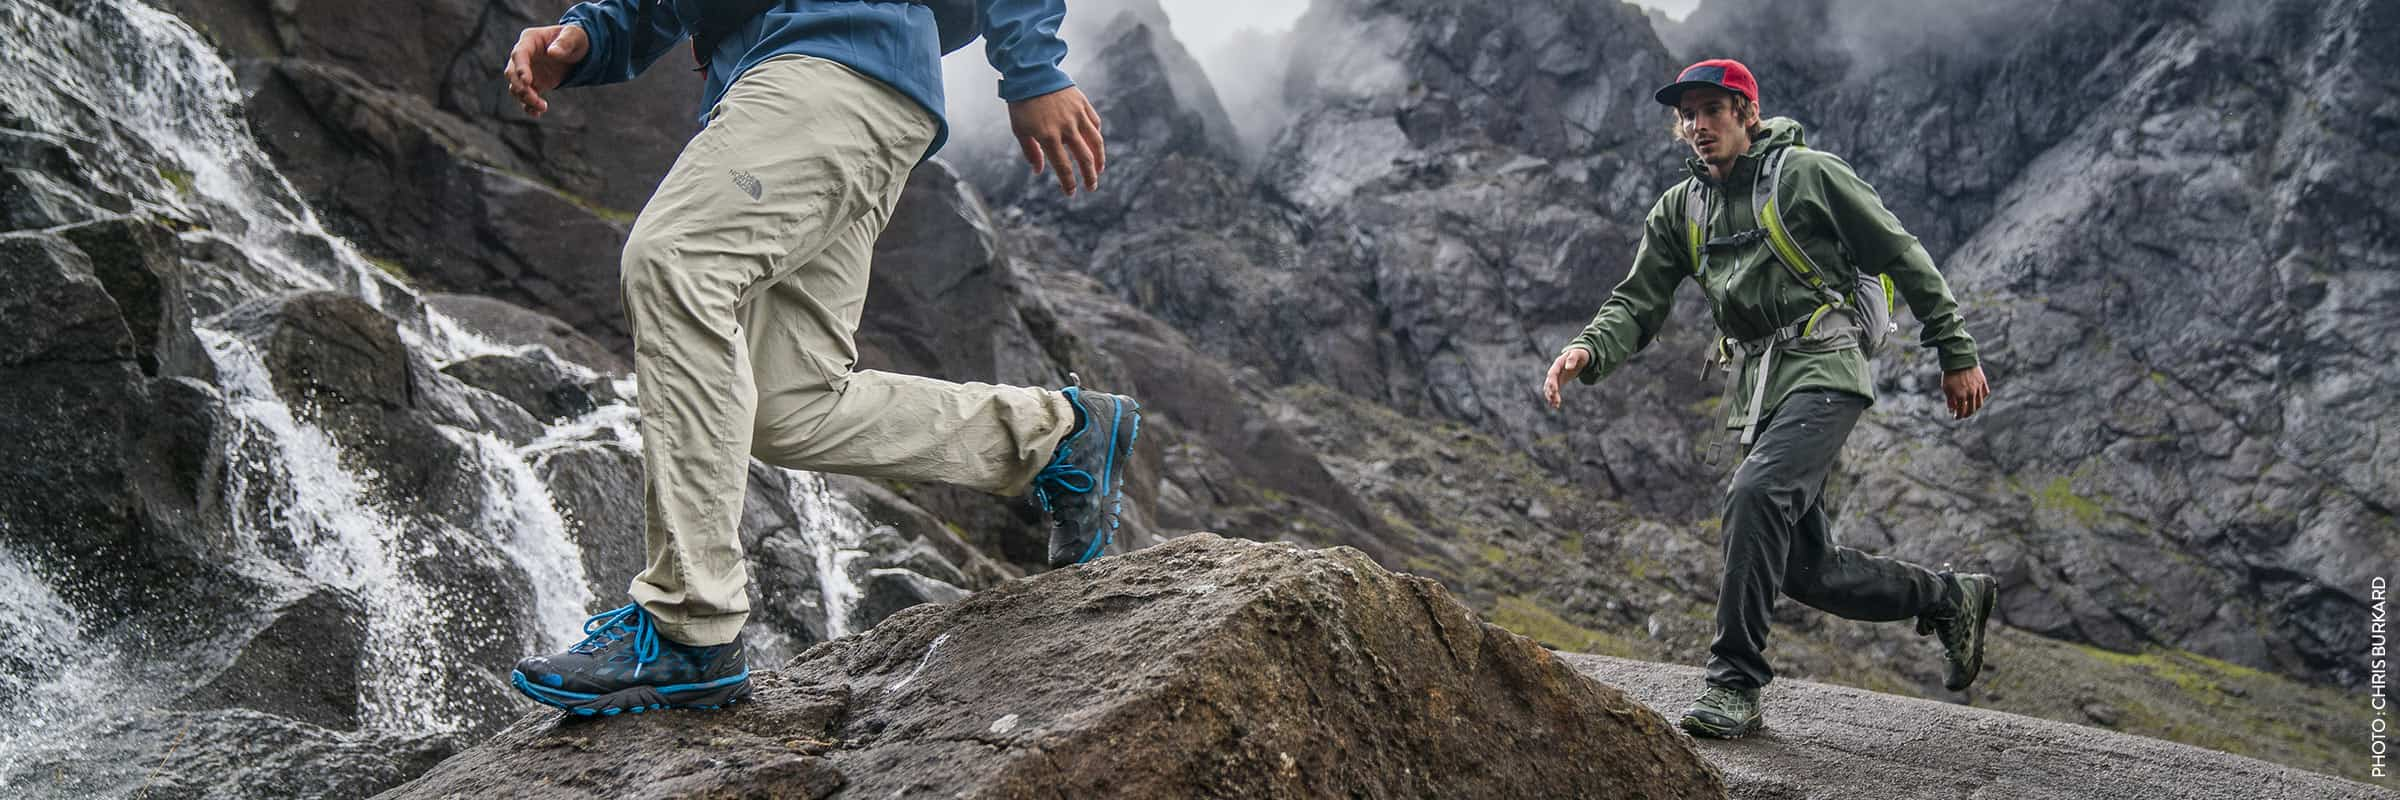 Arc'teryx, Danner, Hanwag, Lowa, Merrell, Salewa, Salomon, Scarpa. Finding the Right Hiking Boots or Shoes